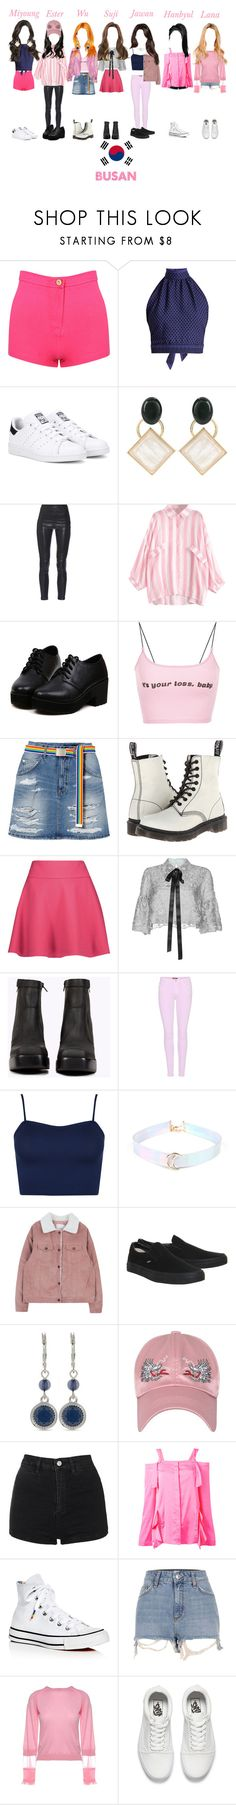 """Fanmeeting In Busan"" by myu7official ❤ liked on Polyvore featuring CECILIE Copenhagen, adidas Originals, Marni, Yves Saint Laurent, Dr. Martens, RED Valentino, Costarellos, Jeffrey Campbell, 7 For All Mankind and WearAll"